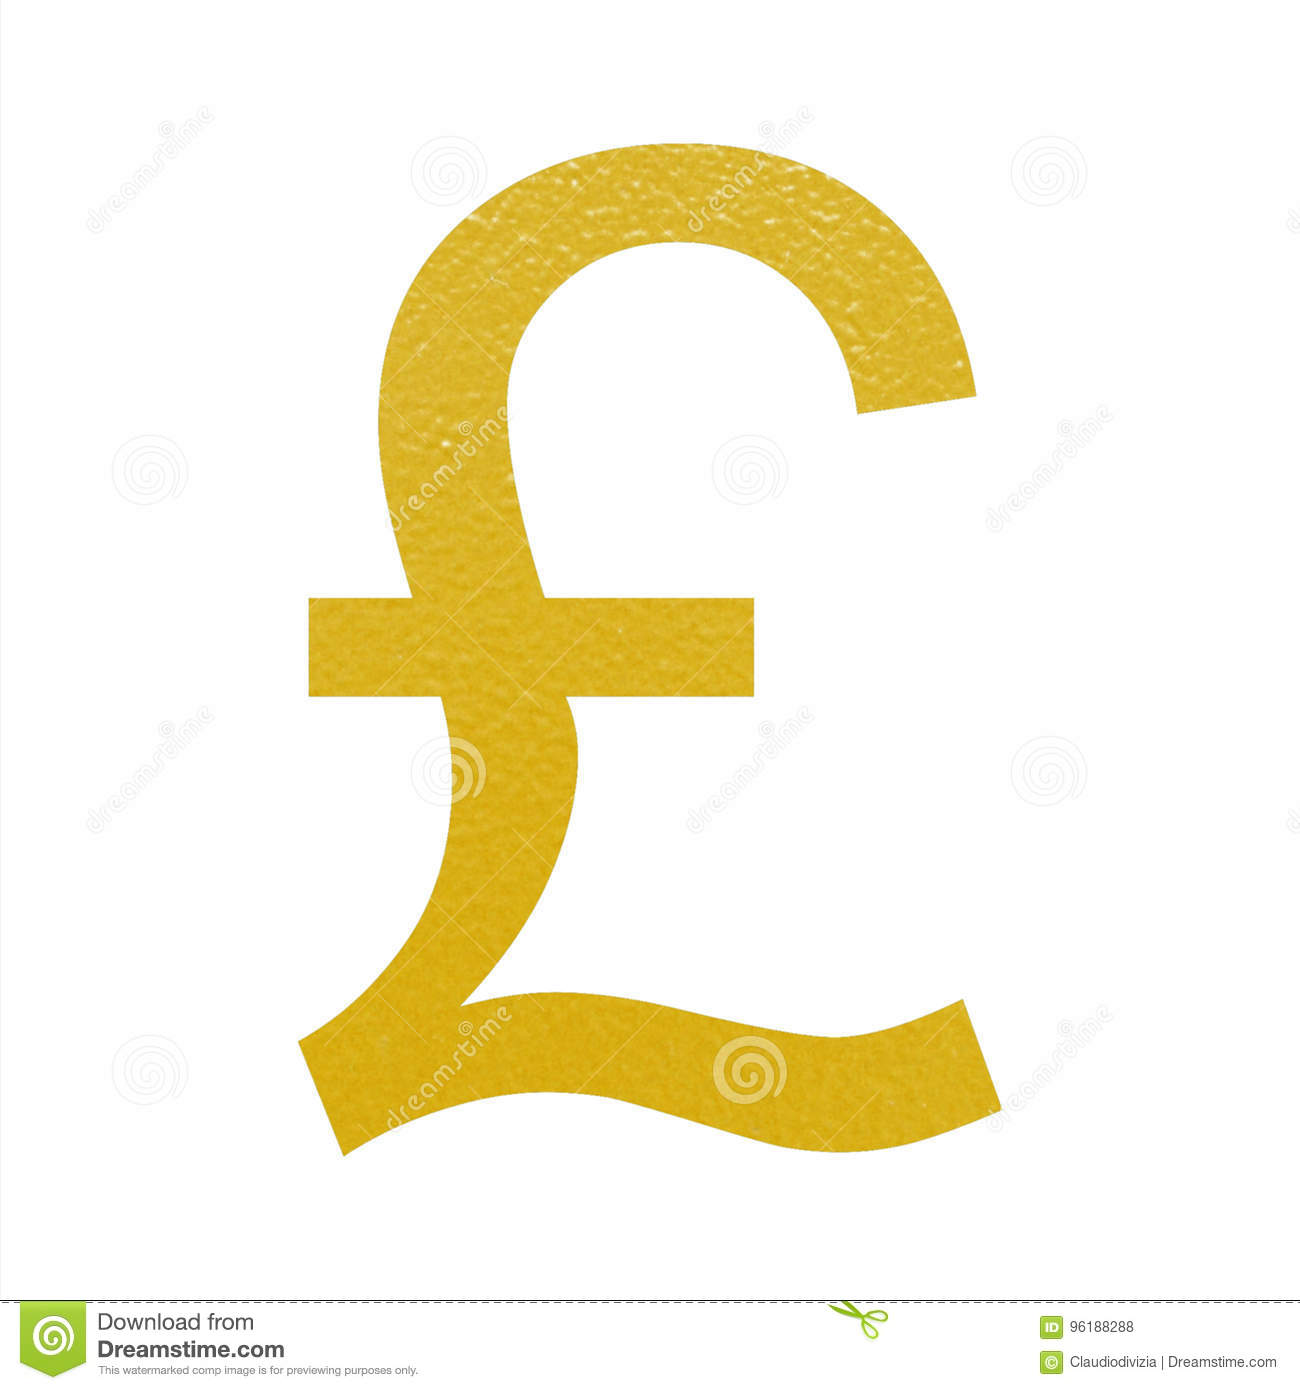 Currency symbol for british pound image collections symbols and gold gbp sign isolated over white stock illustration gold gbp sign isolated over white biocorpaavc buycottarizona Choice Image